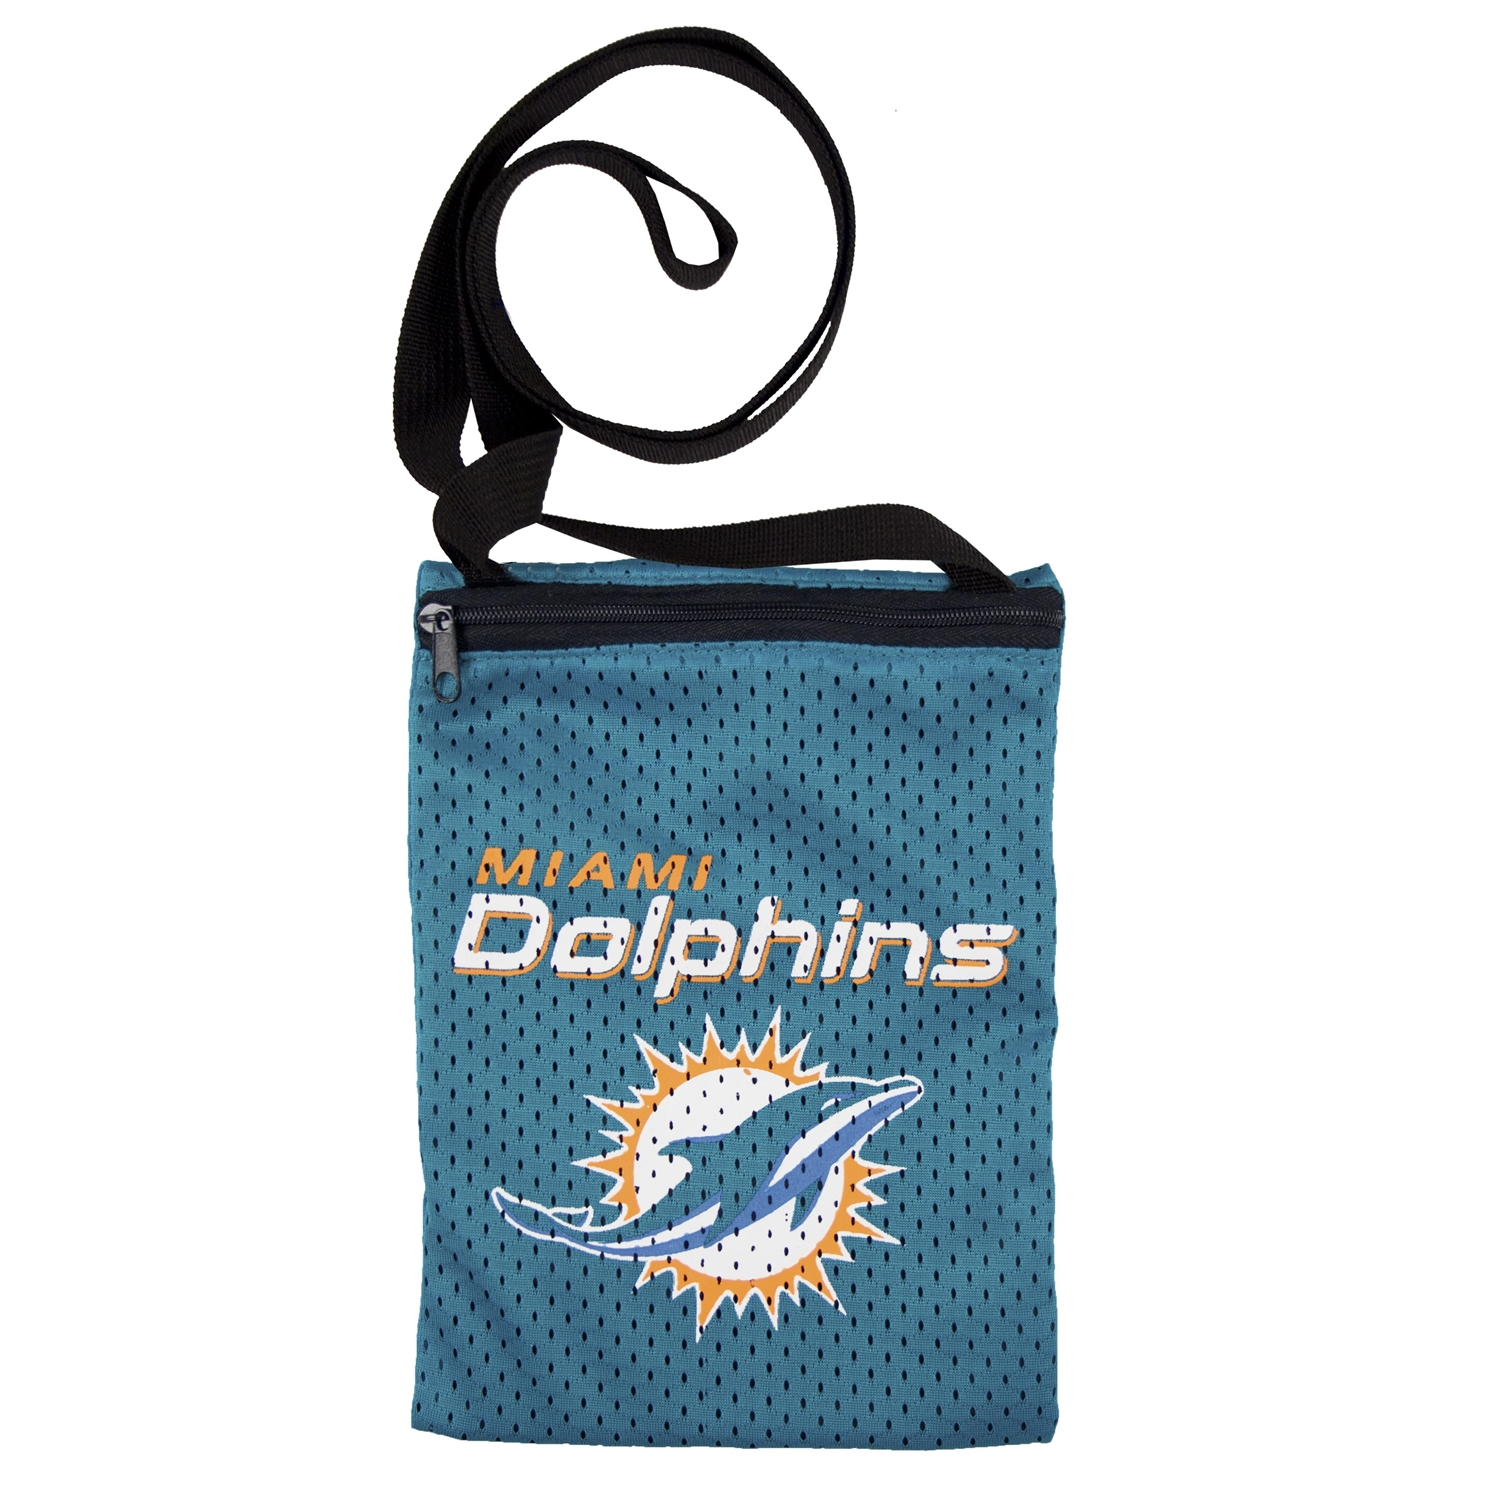 Miami Dolphins Game Day Pouch - 300103-dolp-2 - Football Nfl Football Miami Dolphins Toys Games Puzzles Games 300103-DOLP-2